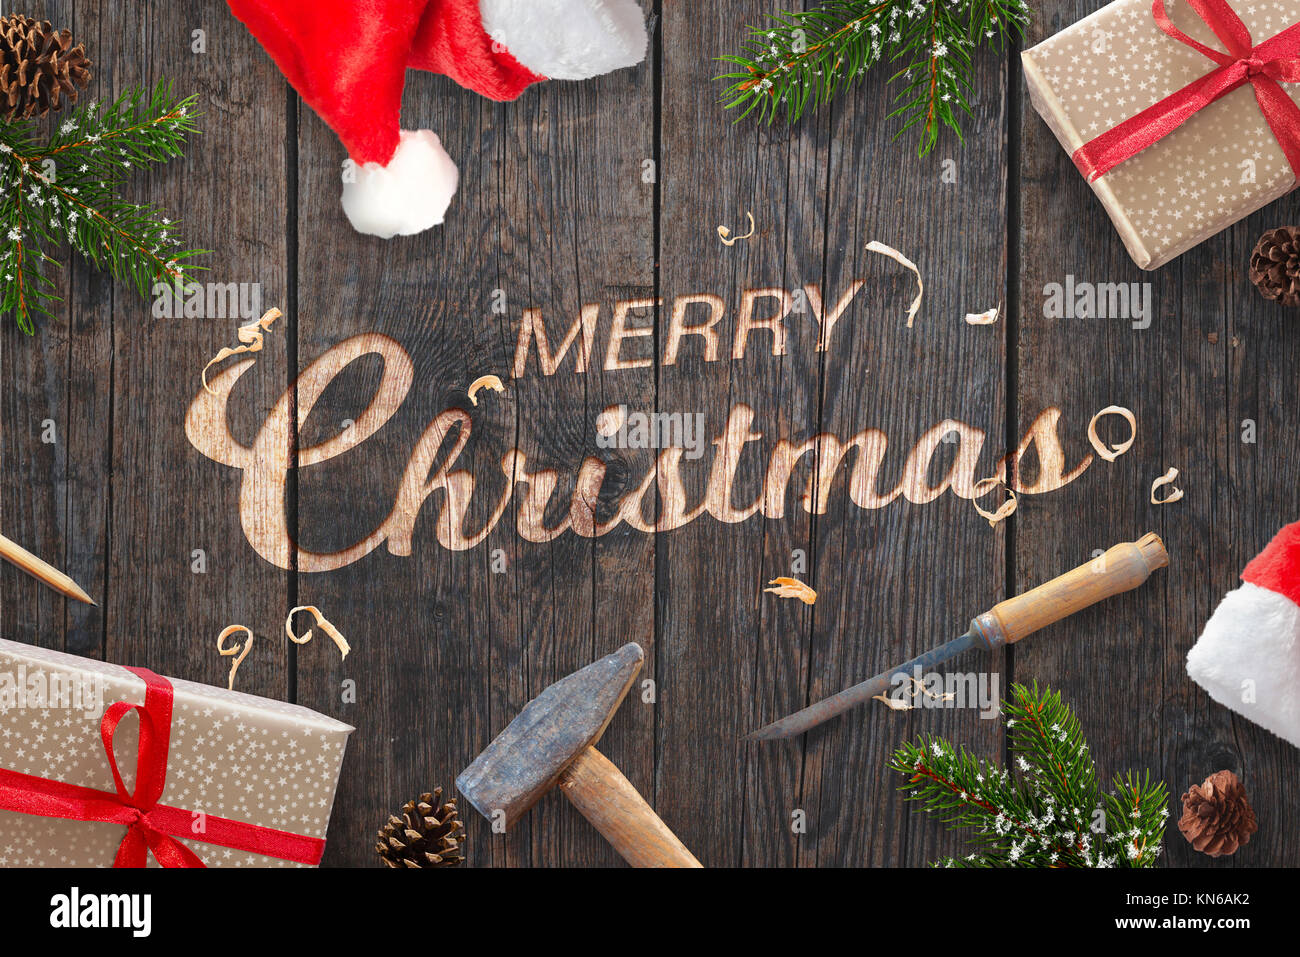 Santa Claus hand carved Merry Christmas text on wooden surface with chisel and hammer. Fir branches, presents and - Stock Image